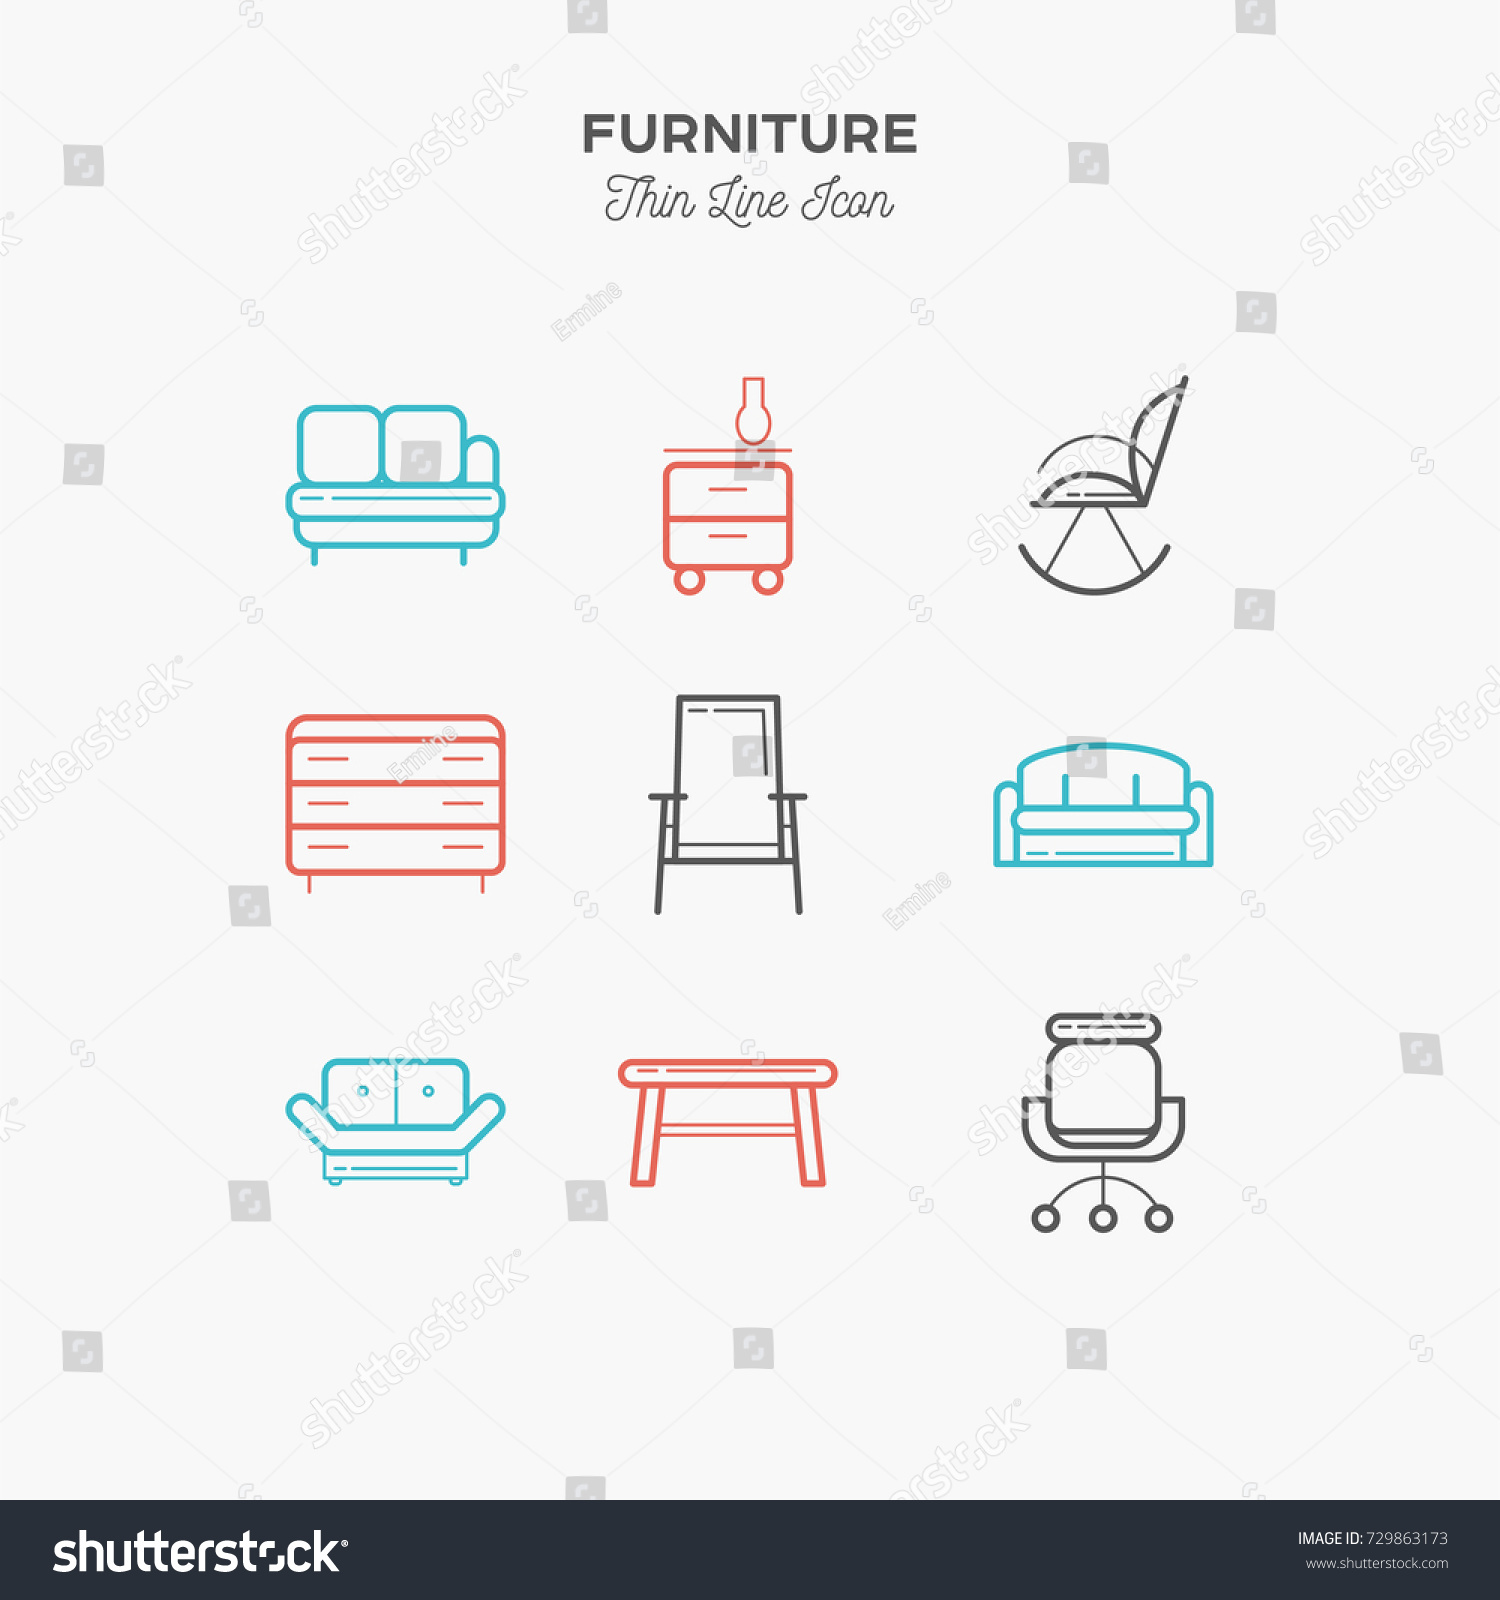 Furniture Sofa Table Chair Curbstone More Stock Vector